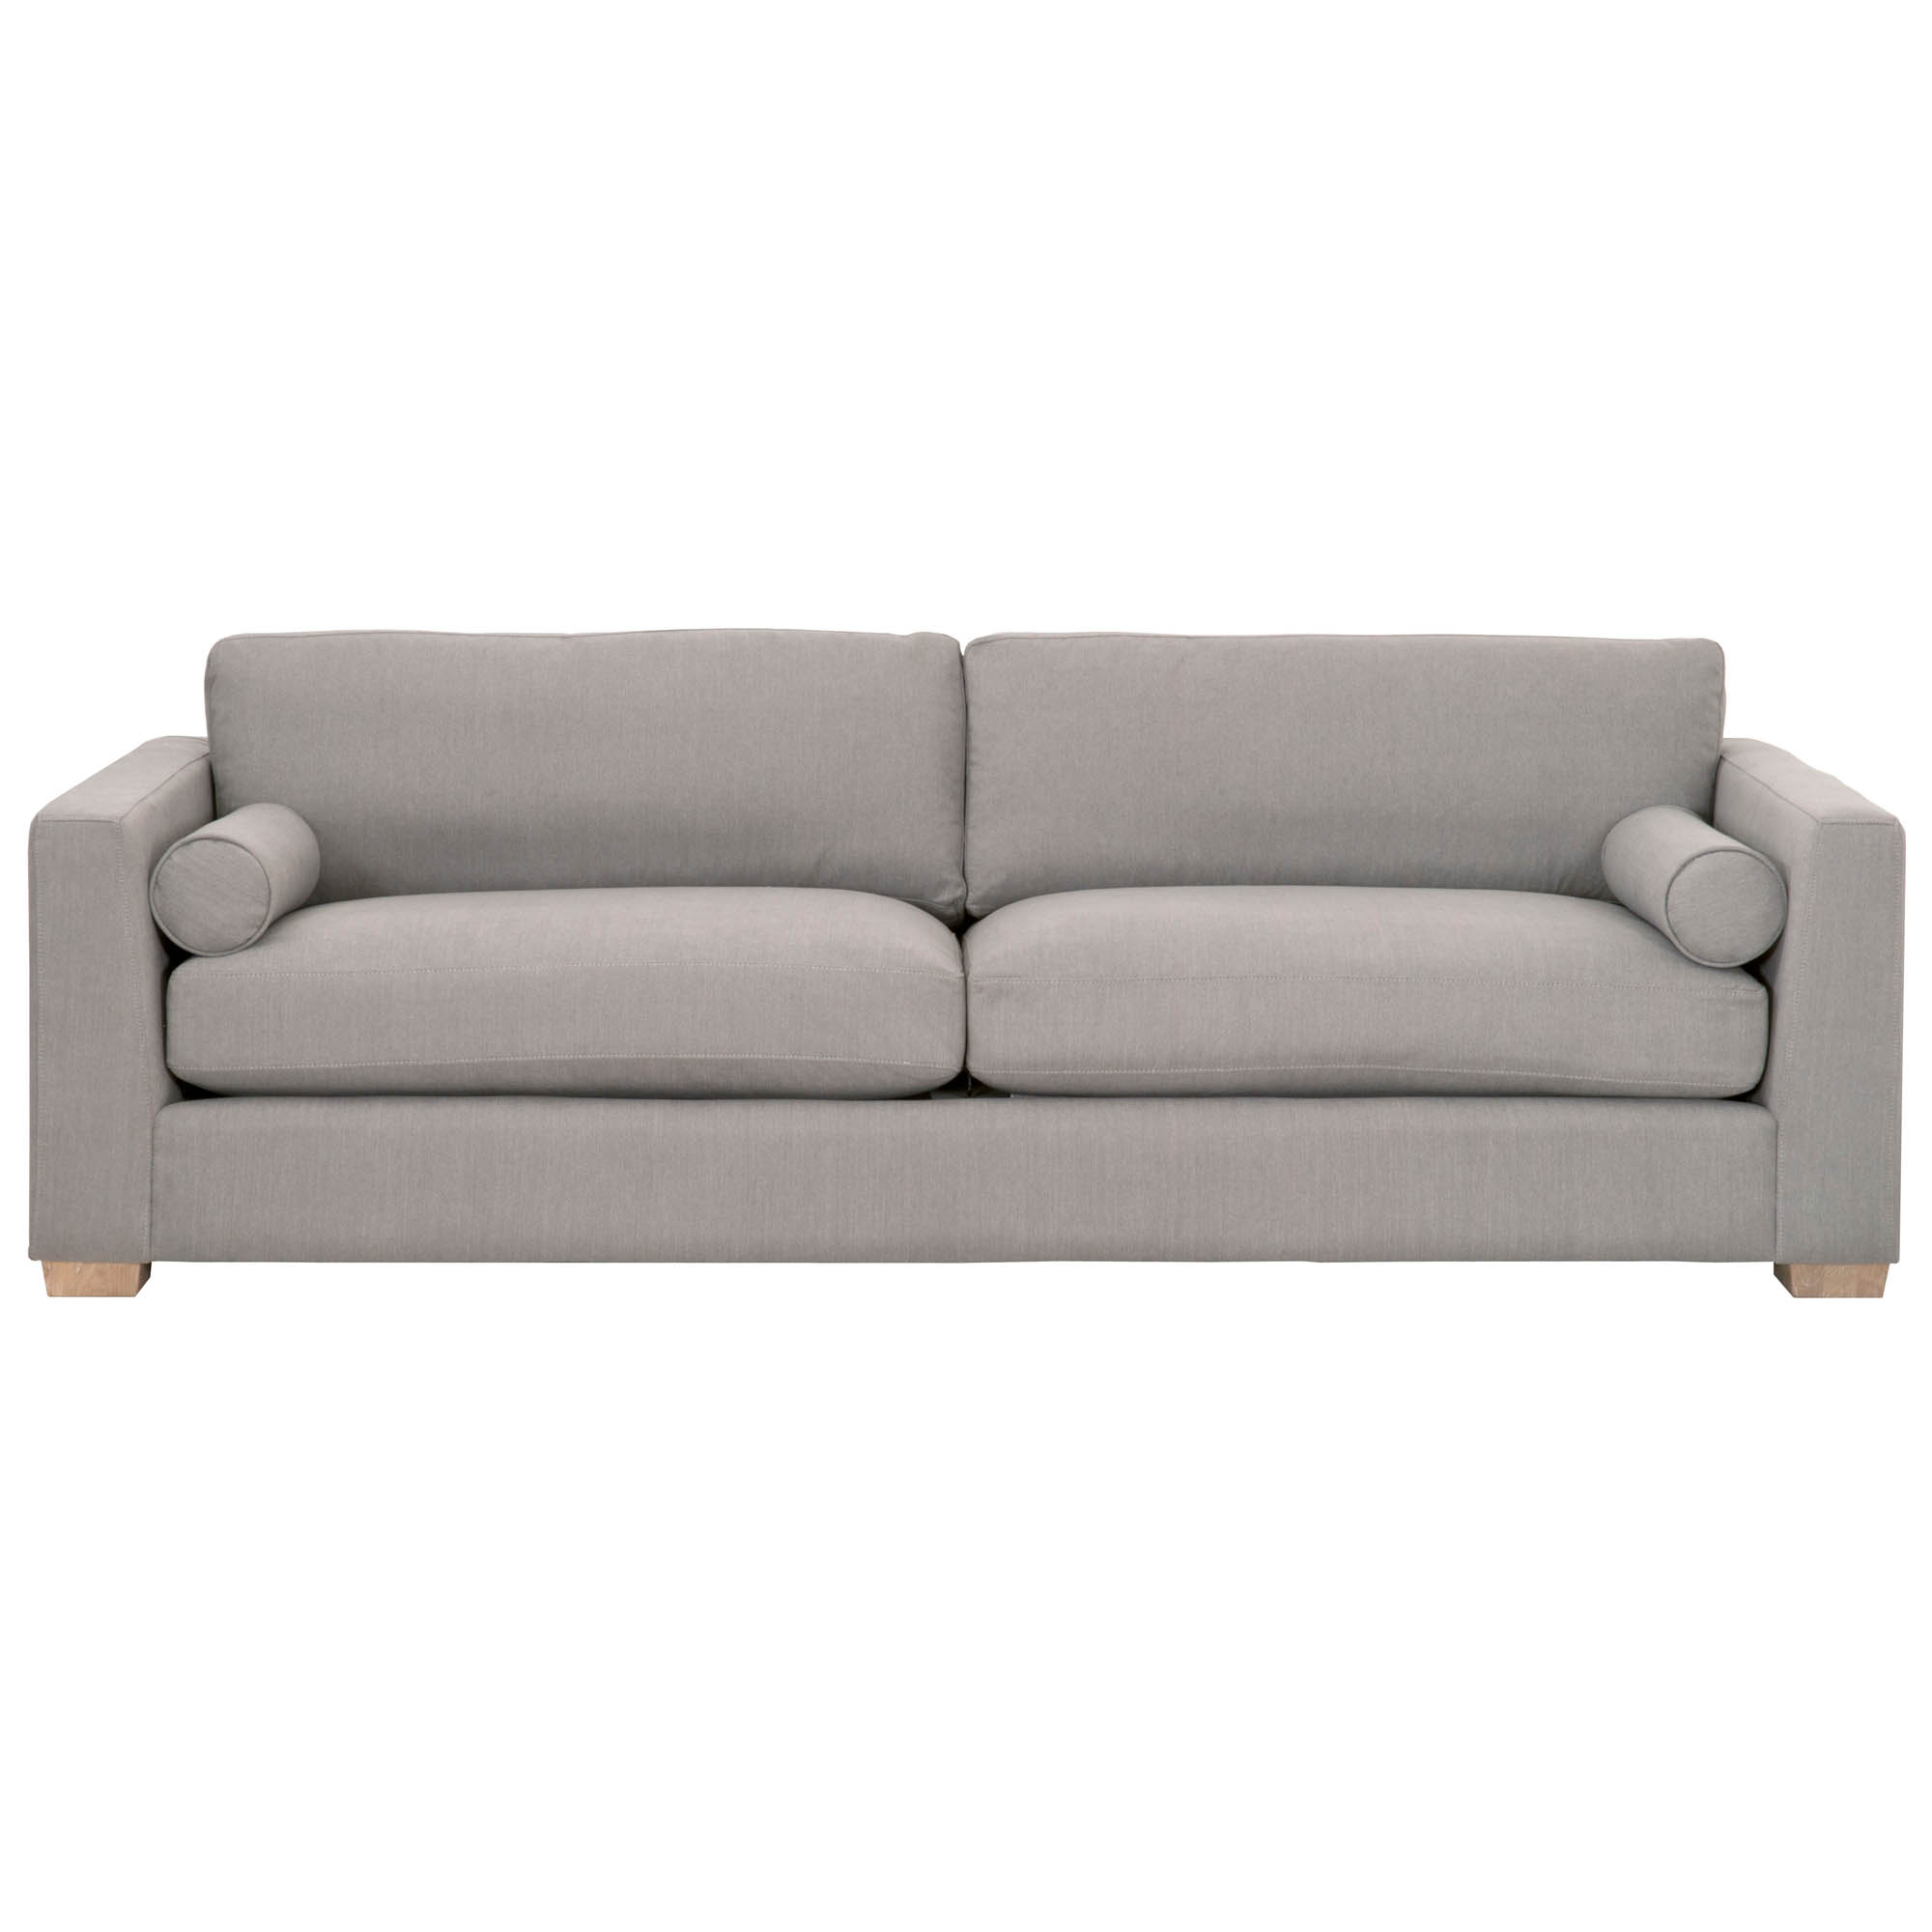 "Hayden 95"" Taper Arm Sofa for Liv Arm Sofa Chairs"